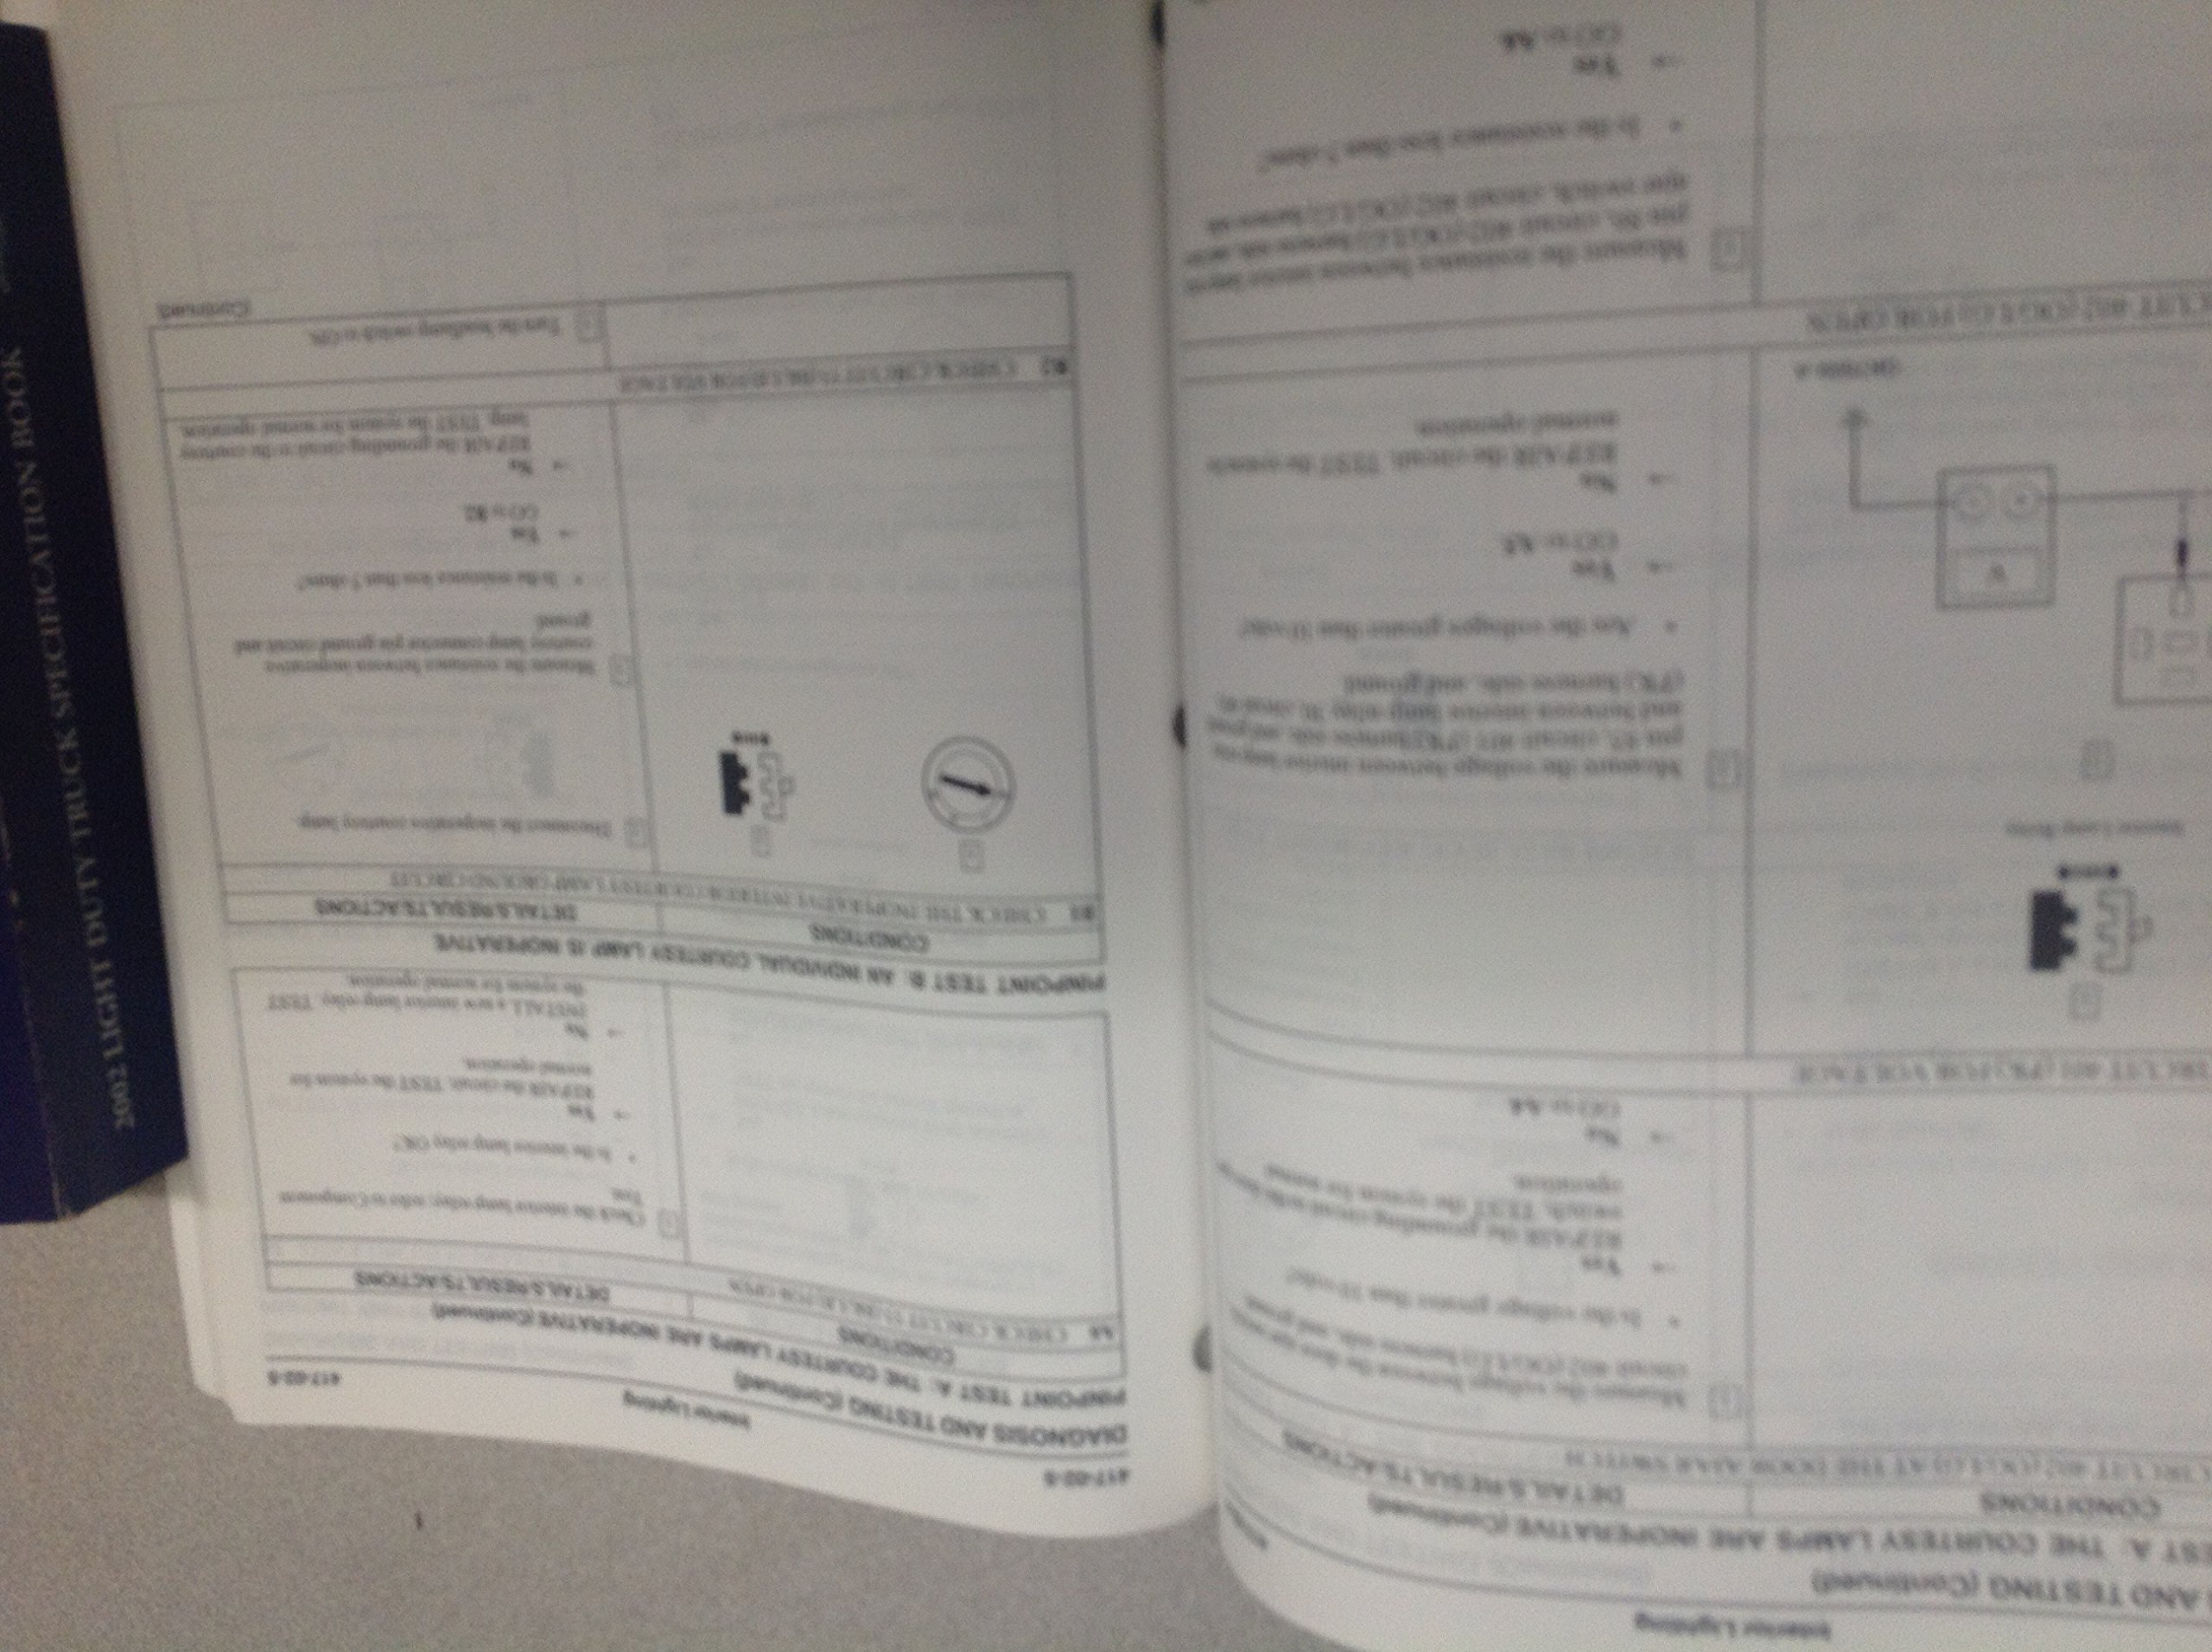 2002 Ford F 53 F53 Motorhome Chassis Service Repair Manual W Wiring Diagram Specifications Books